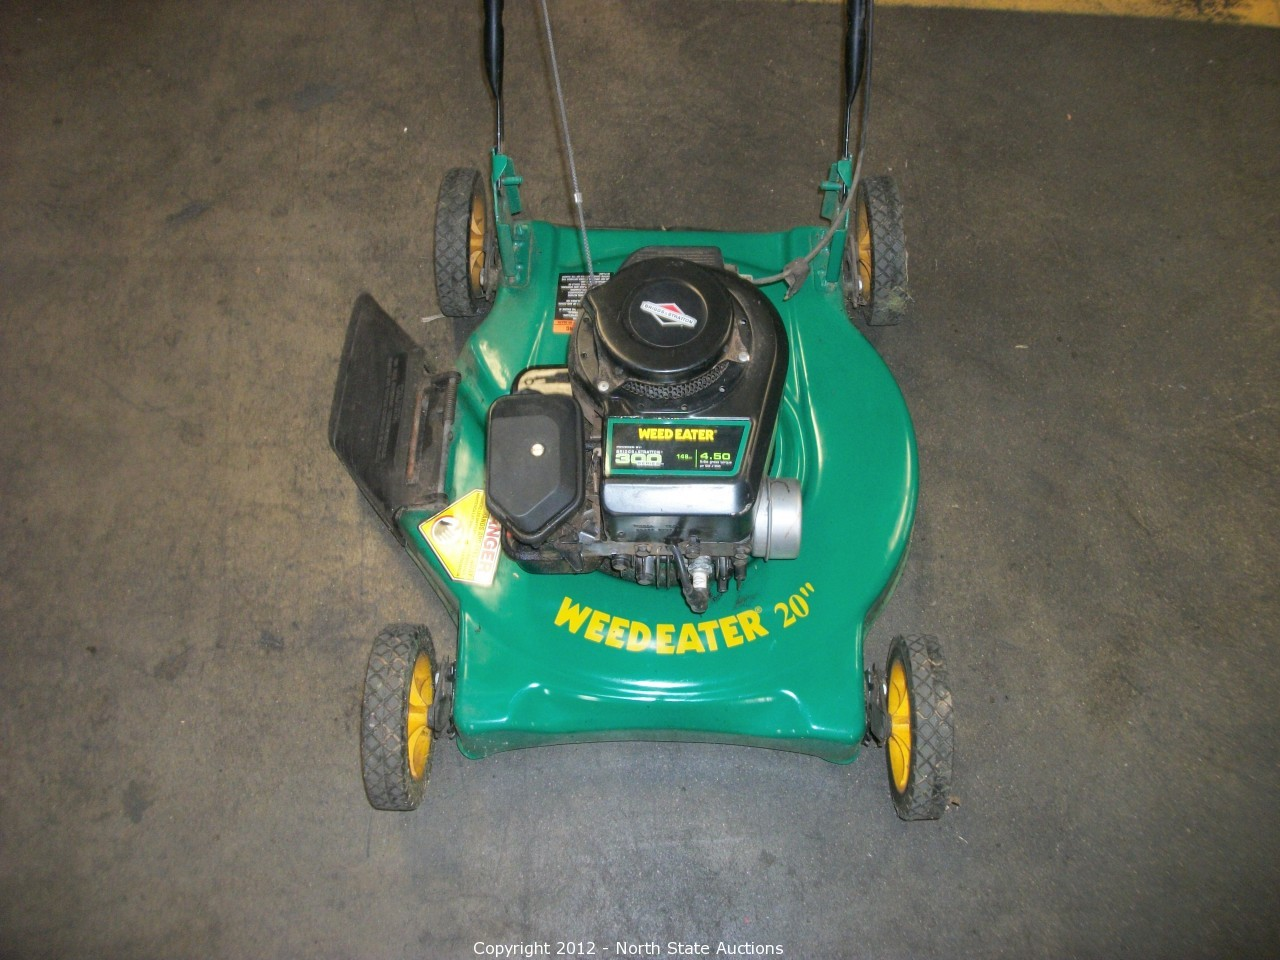 weed eater lawn tractor. mid summer auction madness! weed eater lawn tractor